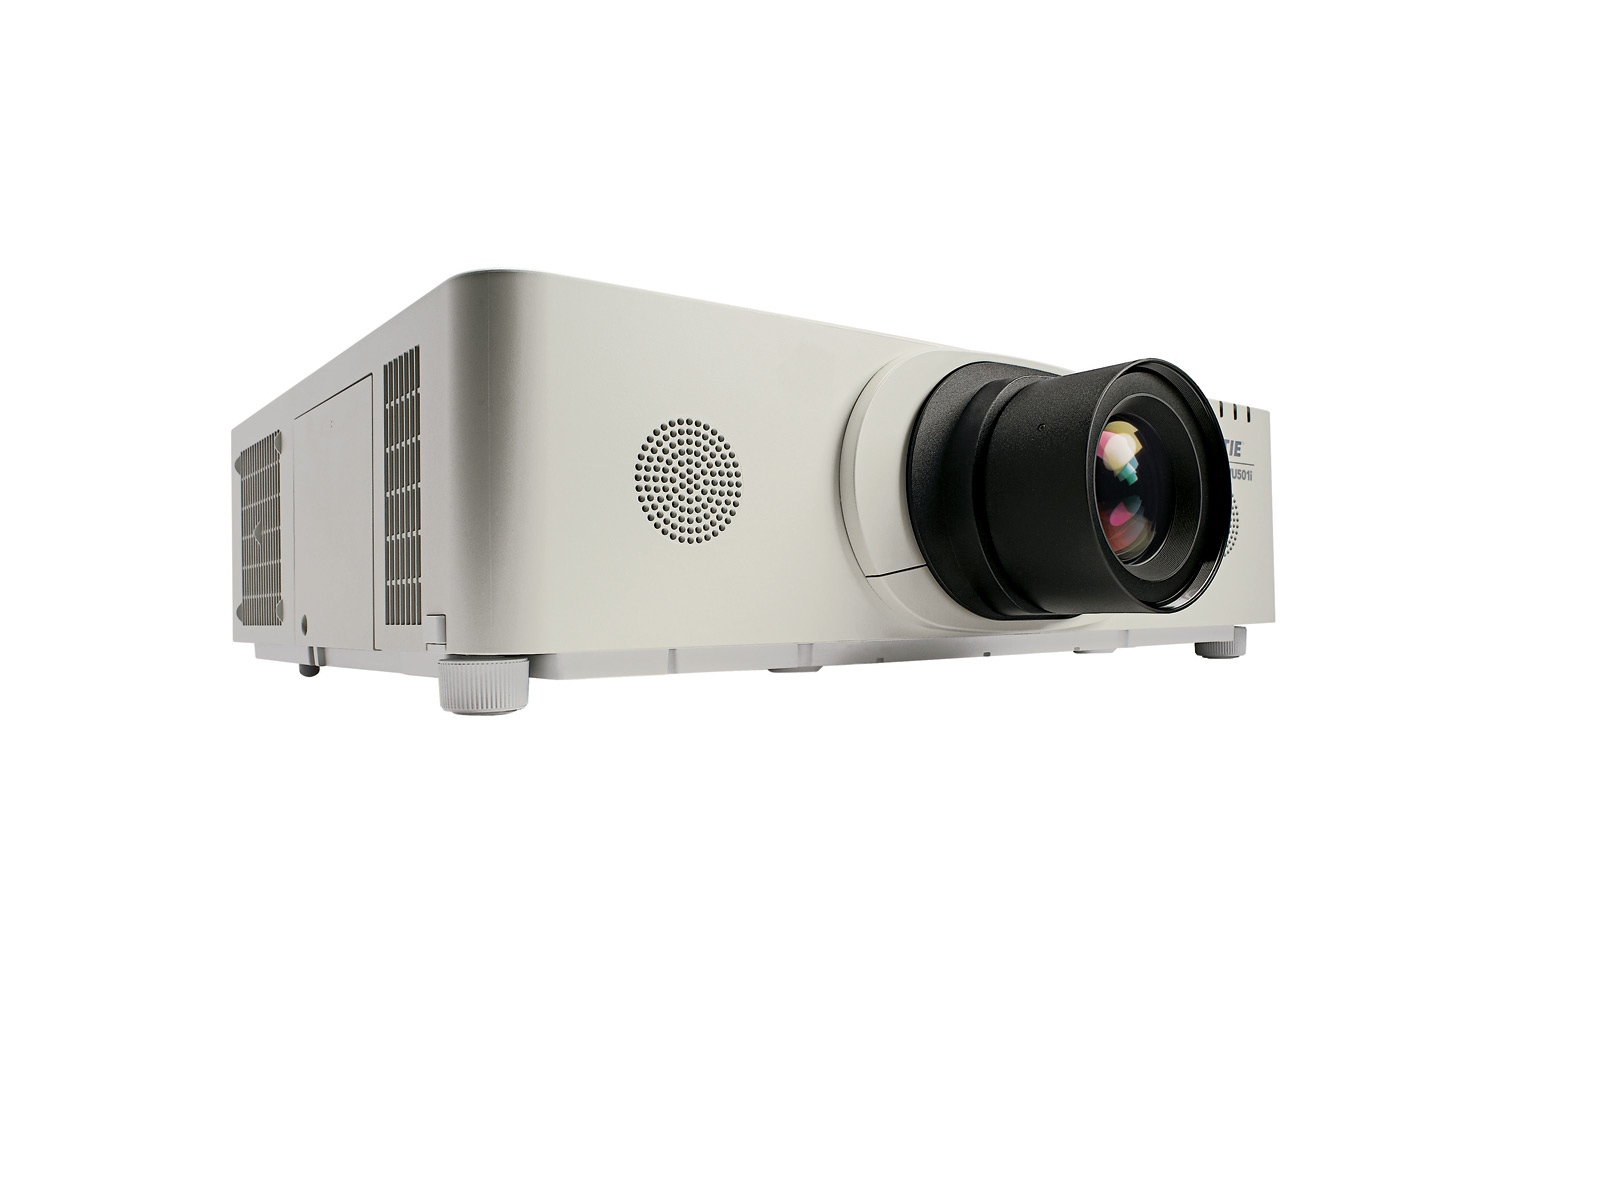 Christie LWU501i 3LCD projector | 121-016108-XX